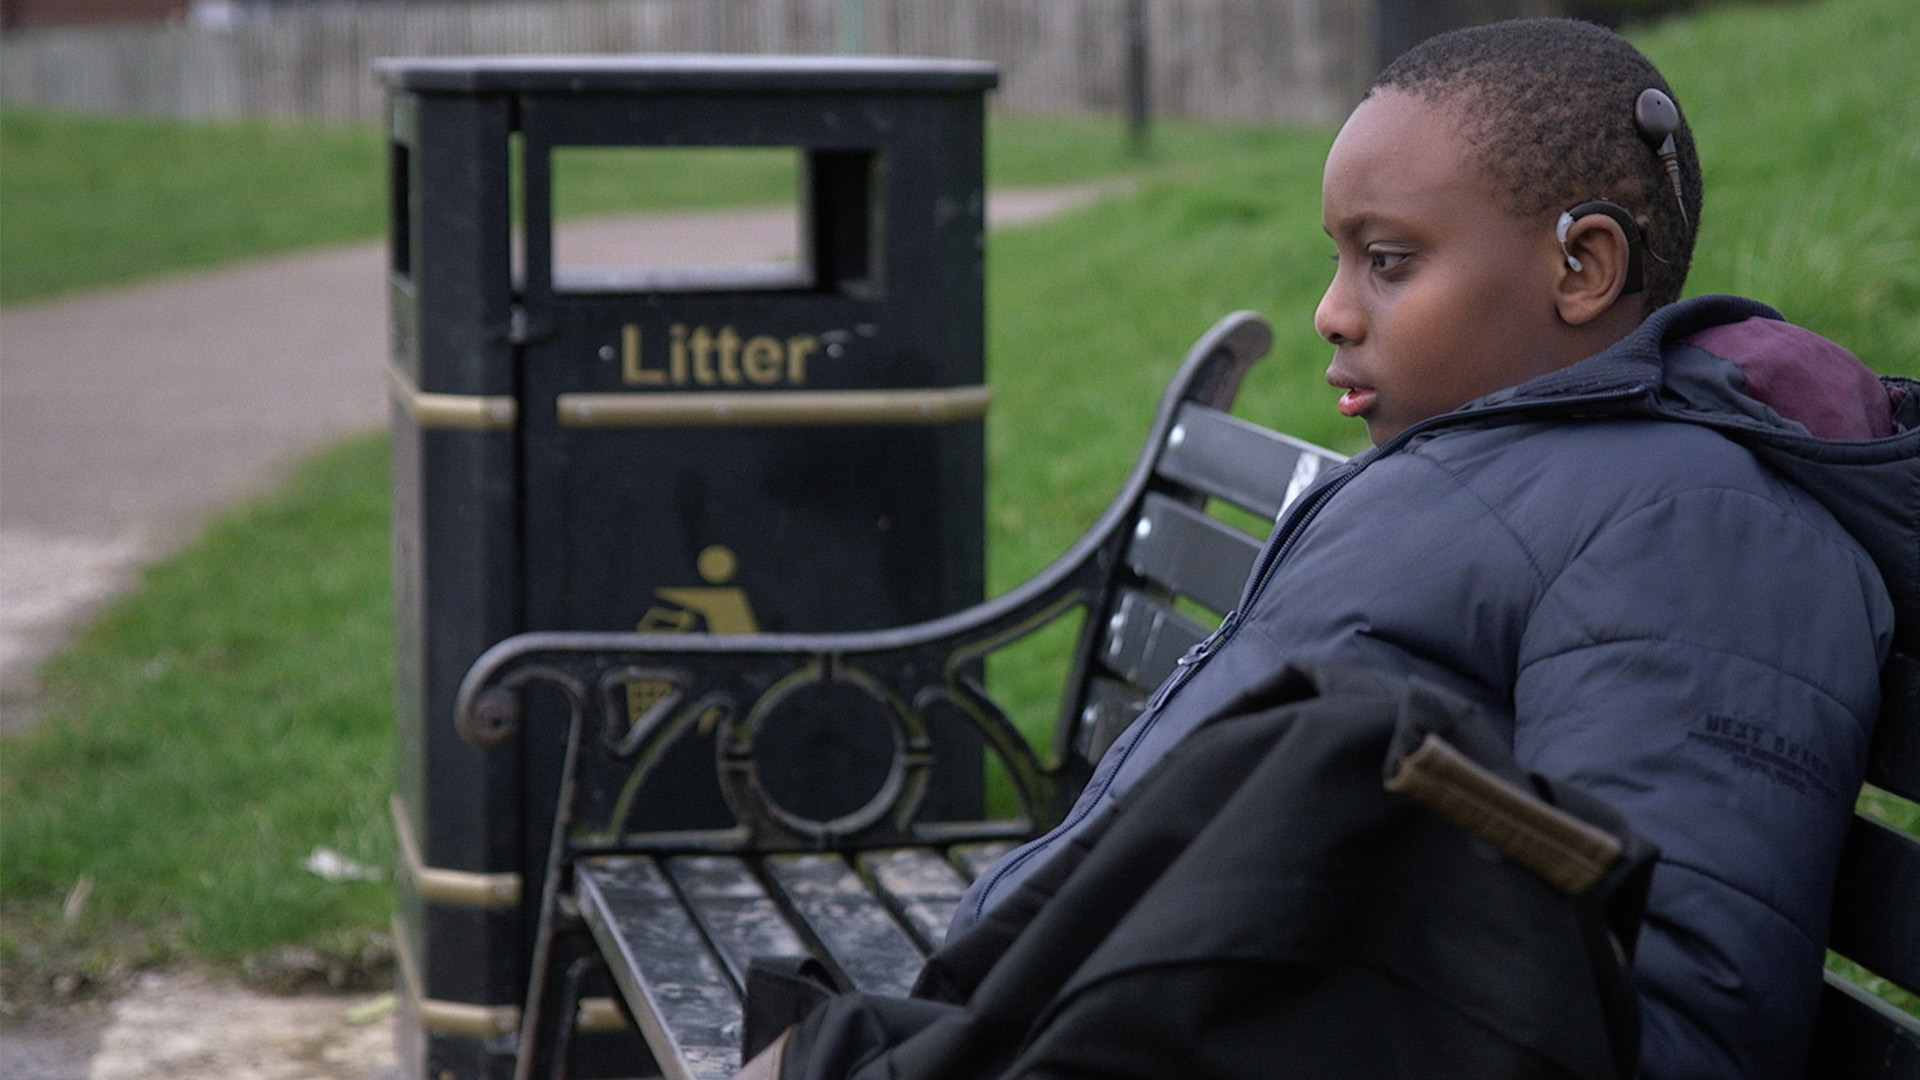 Boy with hearing aids sits on a park bench